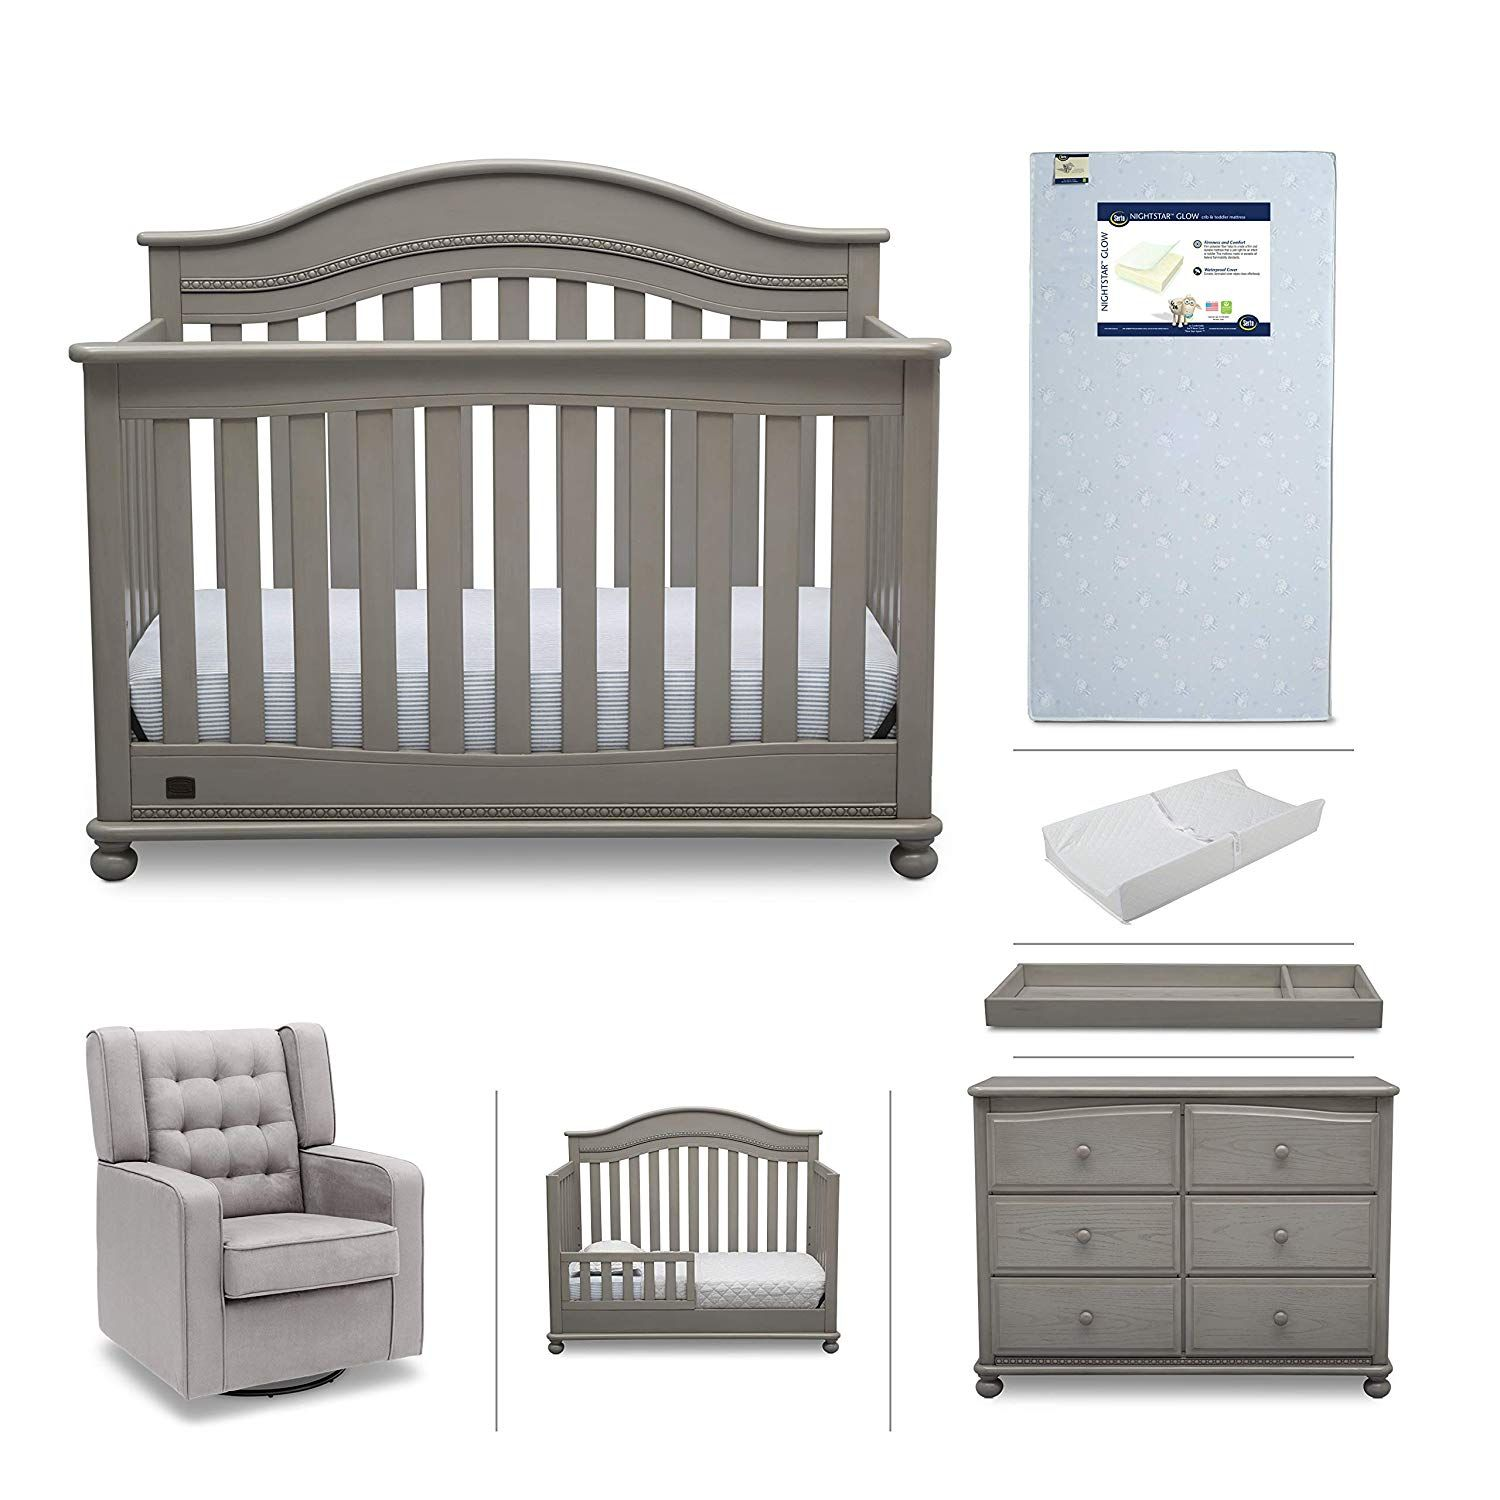 Hot New Baby Nursery Furniture Deals 1 799 99 Baby Nursery